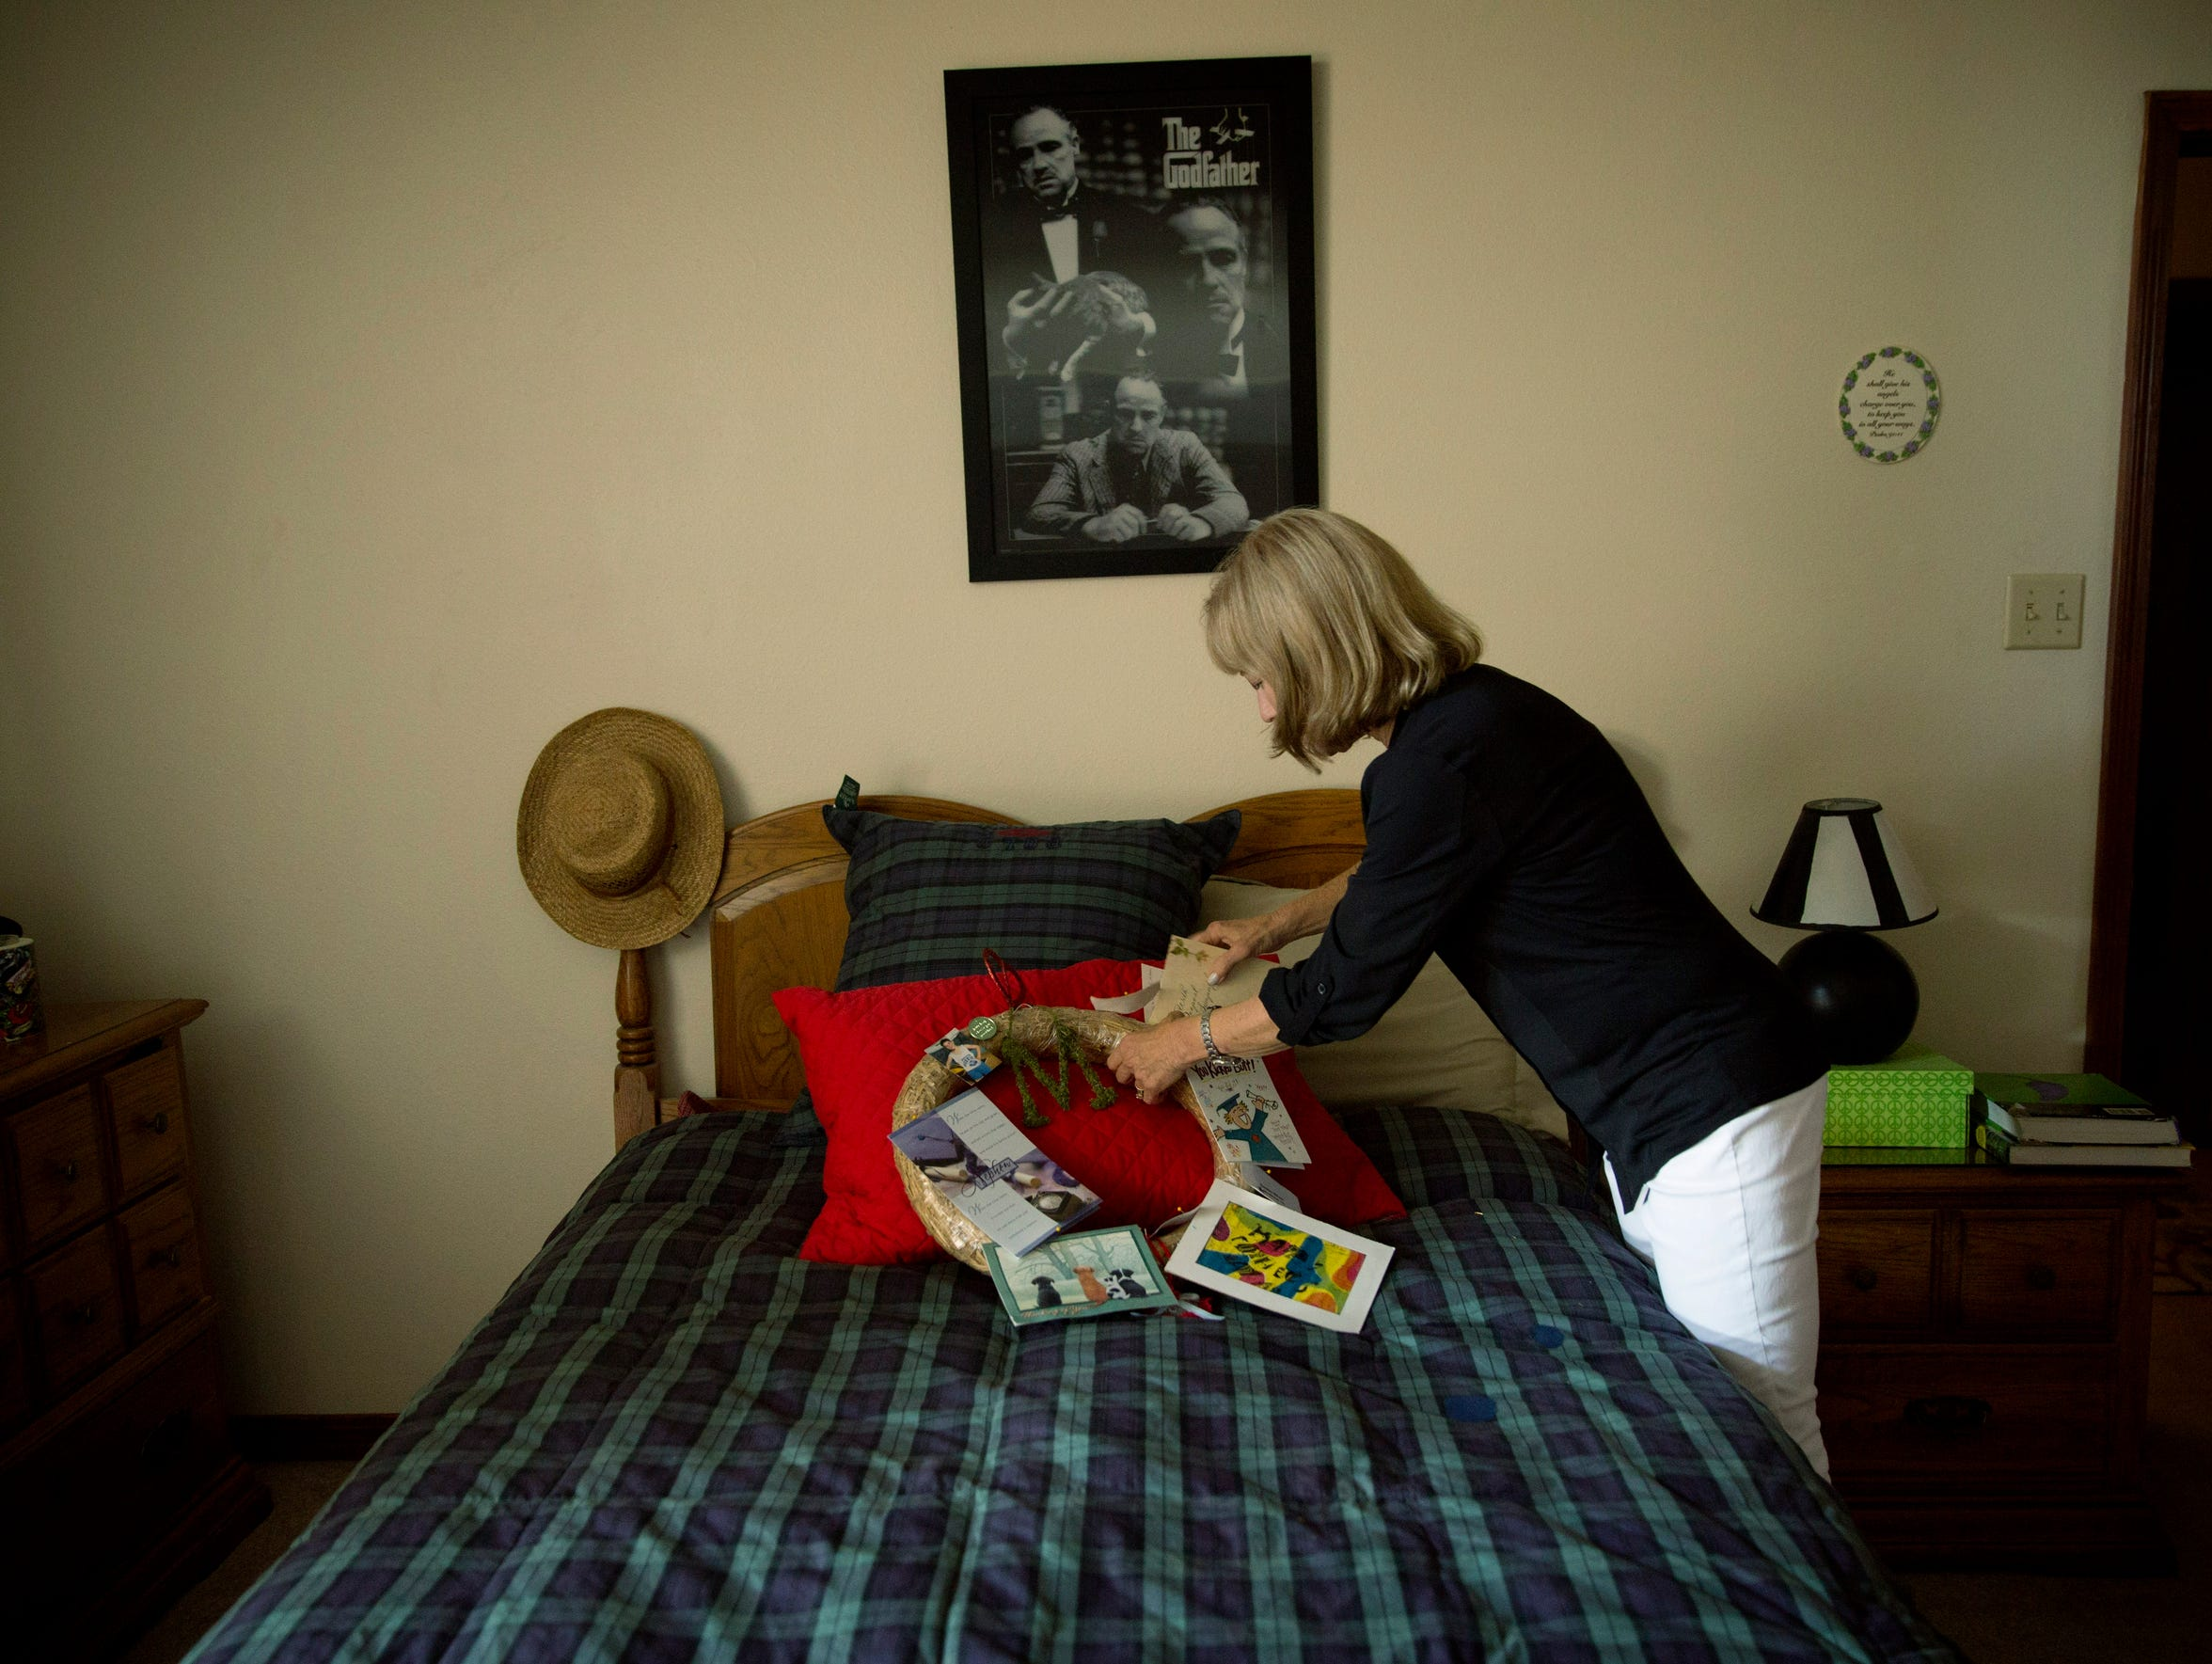 Debbie Milam places a card she found on the bed of